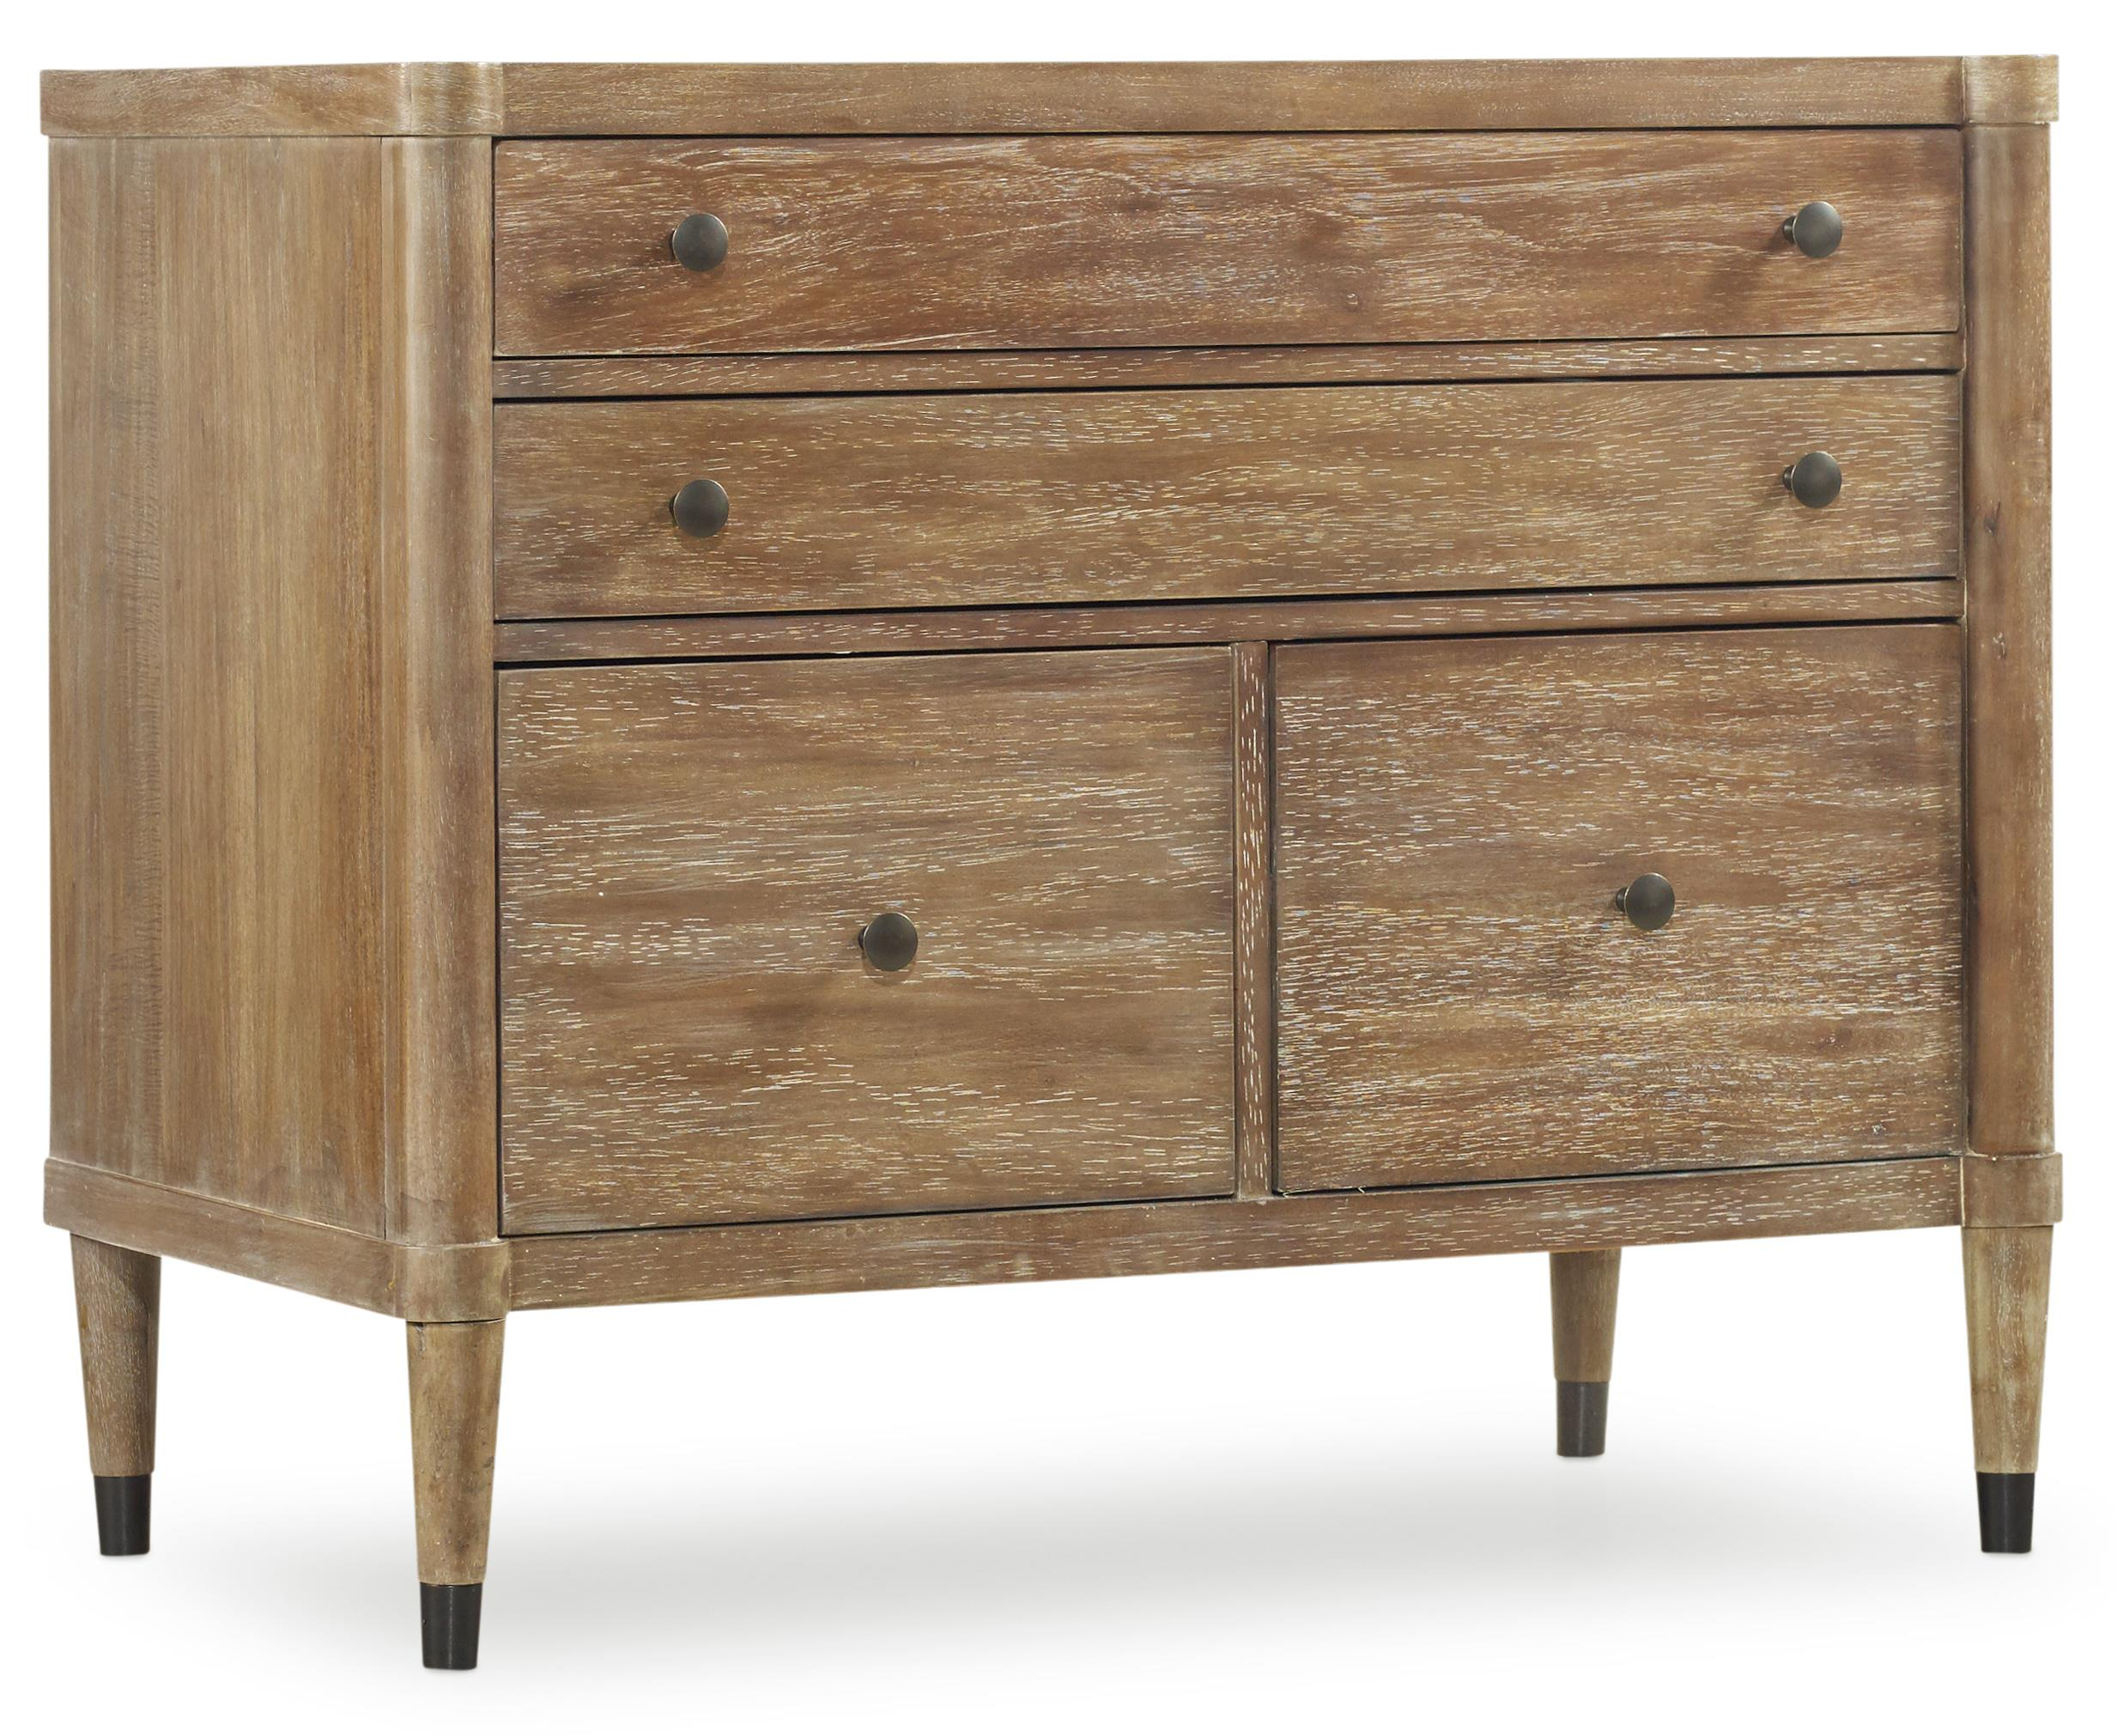 Hooker Furniture Studio 7H Utility Credenza - Item Number: 5382-75900